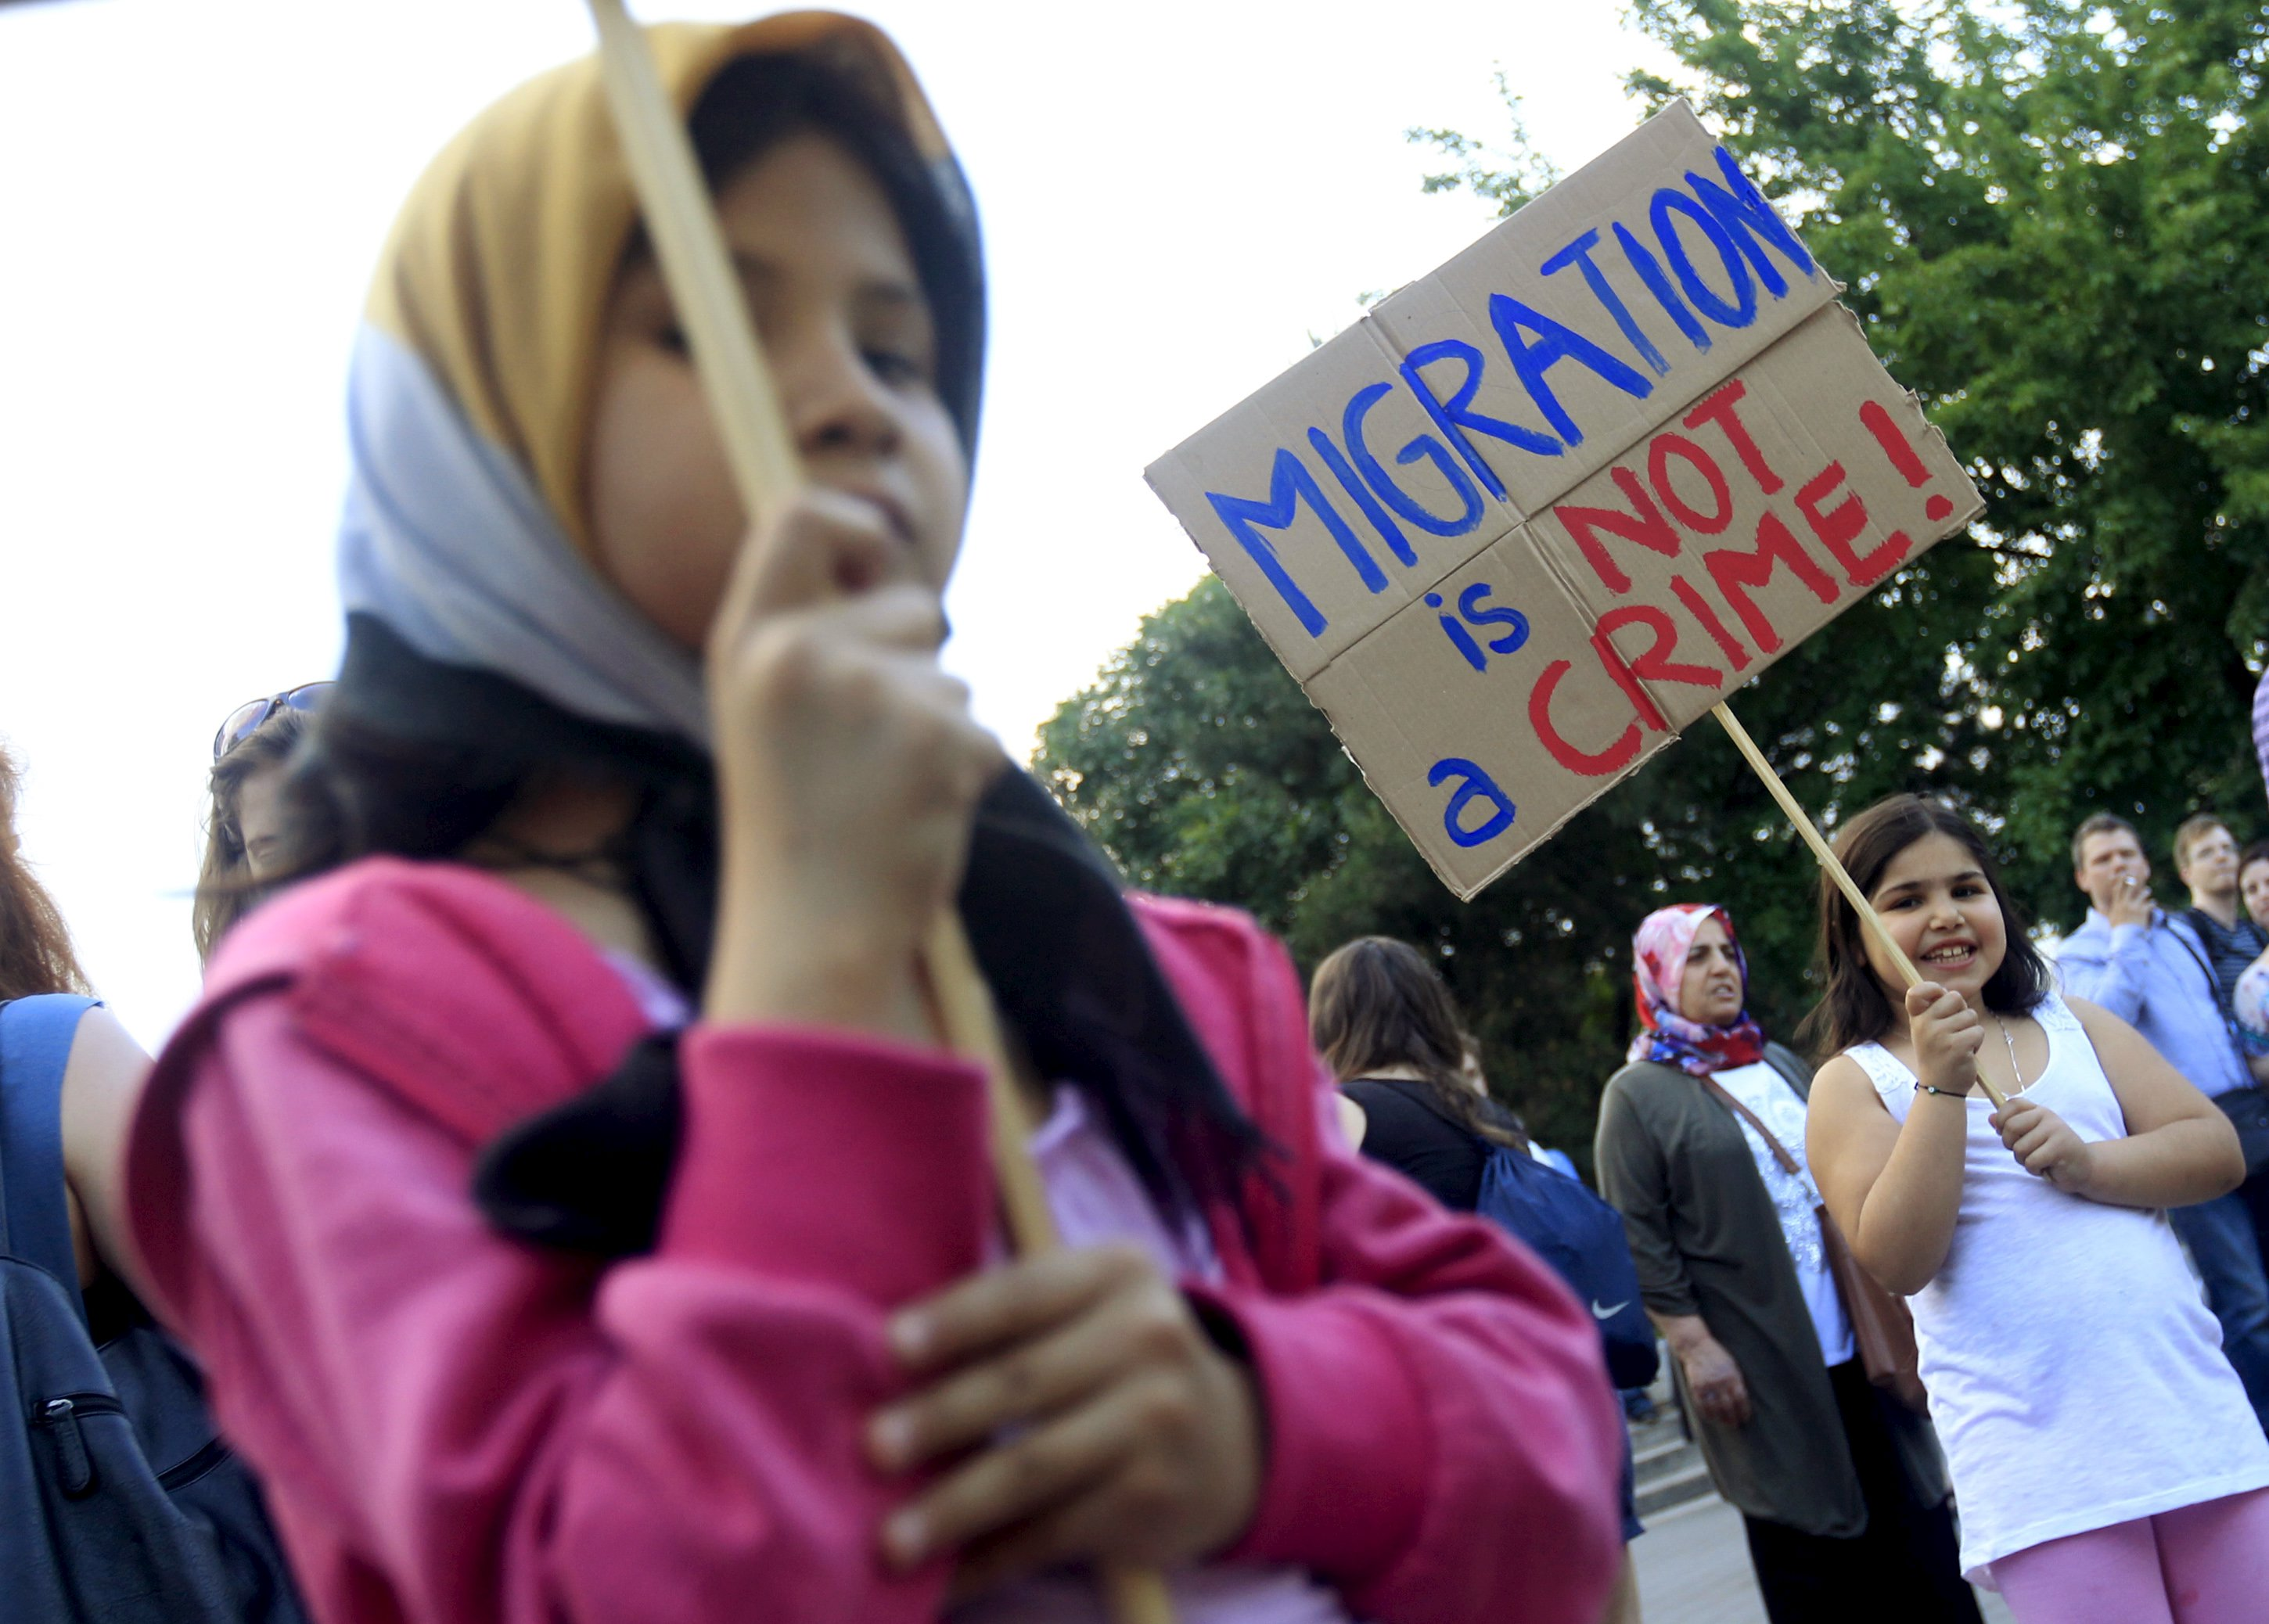 A girl holds a placard during a protest against Hungarian Prime Minister Viktor Orban's immigration policy proposals in central Budapest, Hungary, May 19, 2015. Hungarian Prime Minister Viktor Orban decried EU proposals for migrant quotas as